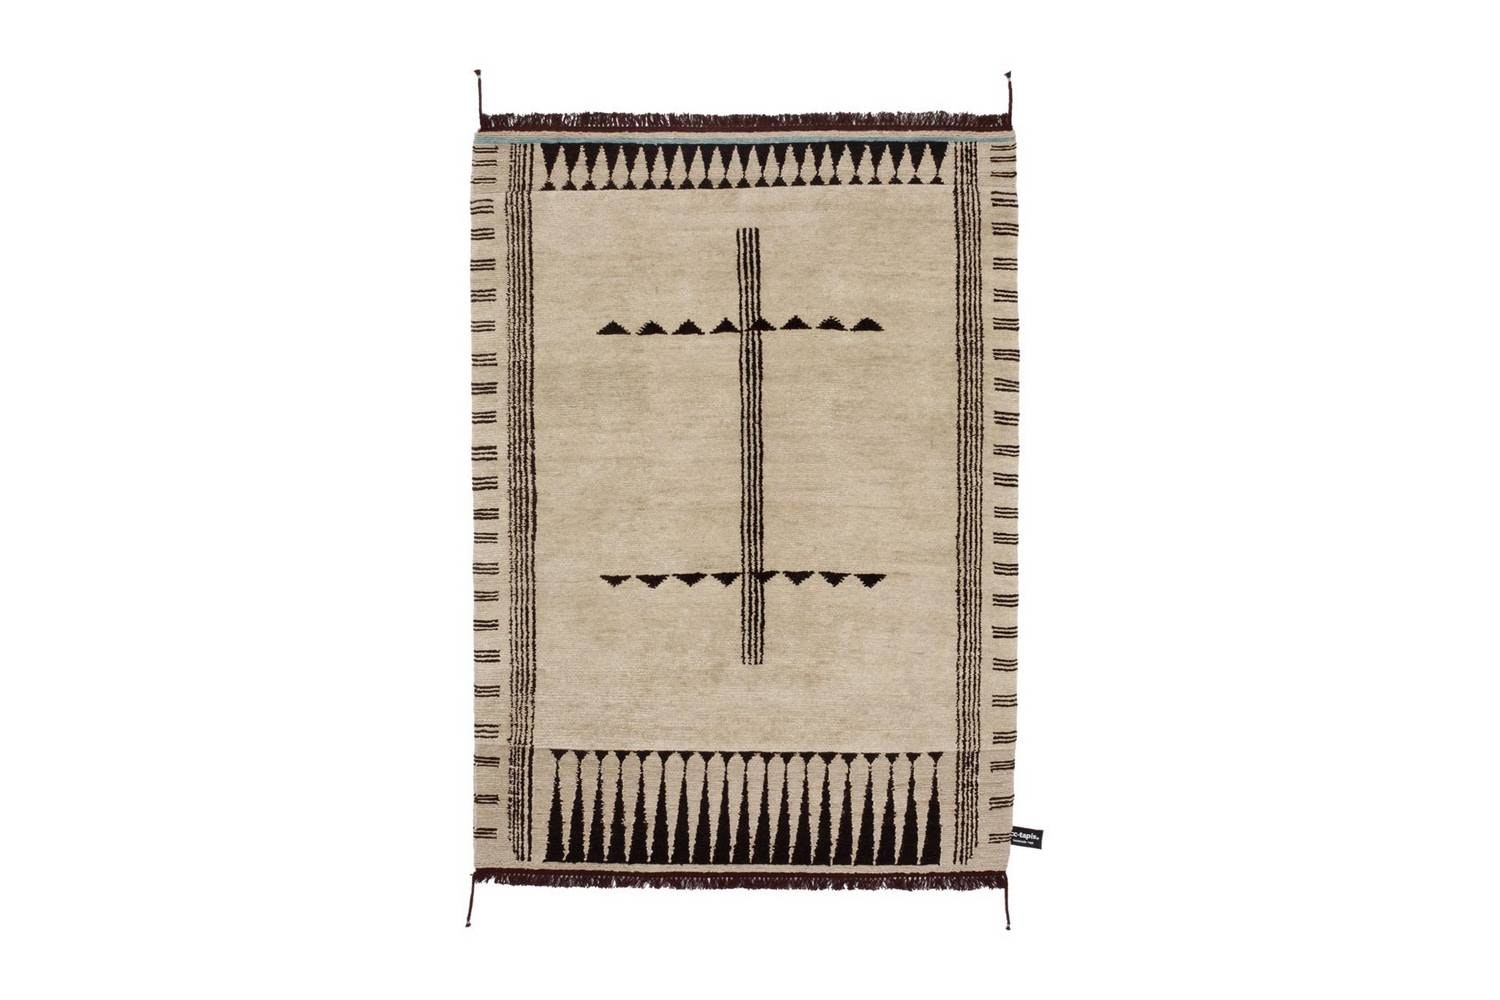 Primitive Weave 1 Rug by Chiara Andreatti for CC-Tapis